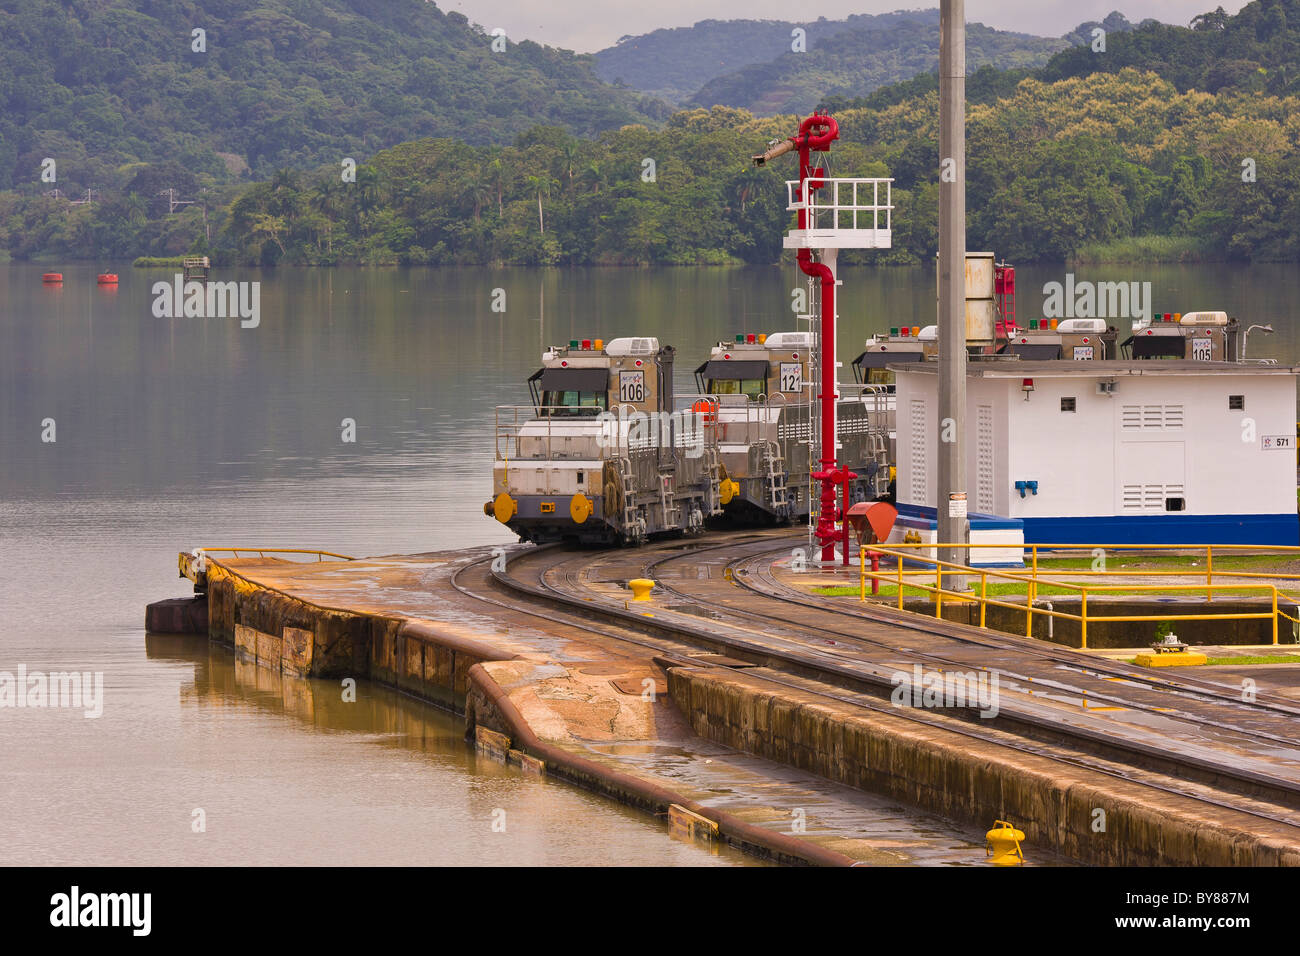 PANAMA - Electric locomotives also know as mules, Miraflores Locks on Panama Canal. - Stock Image